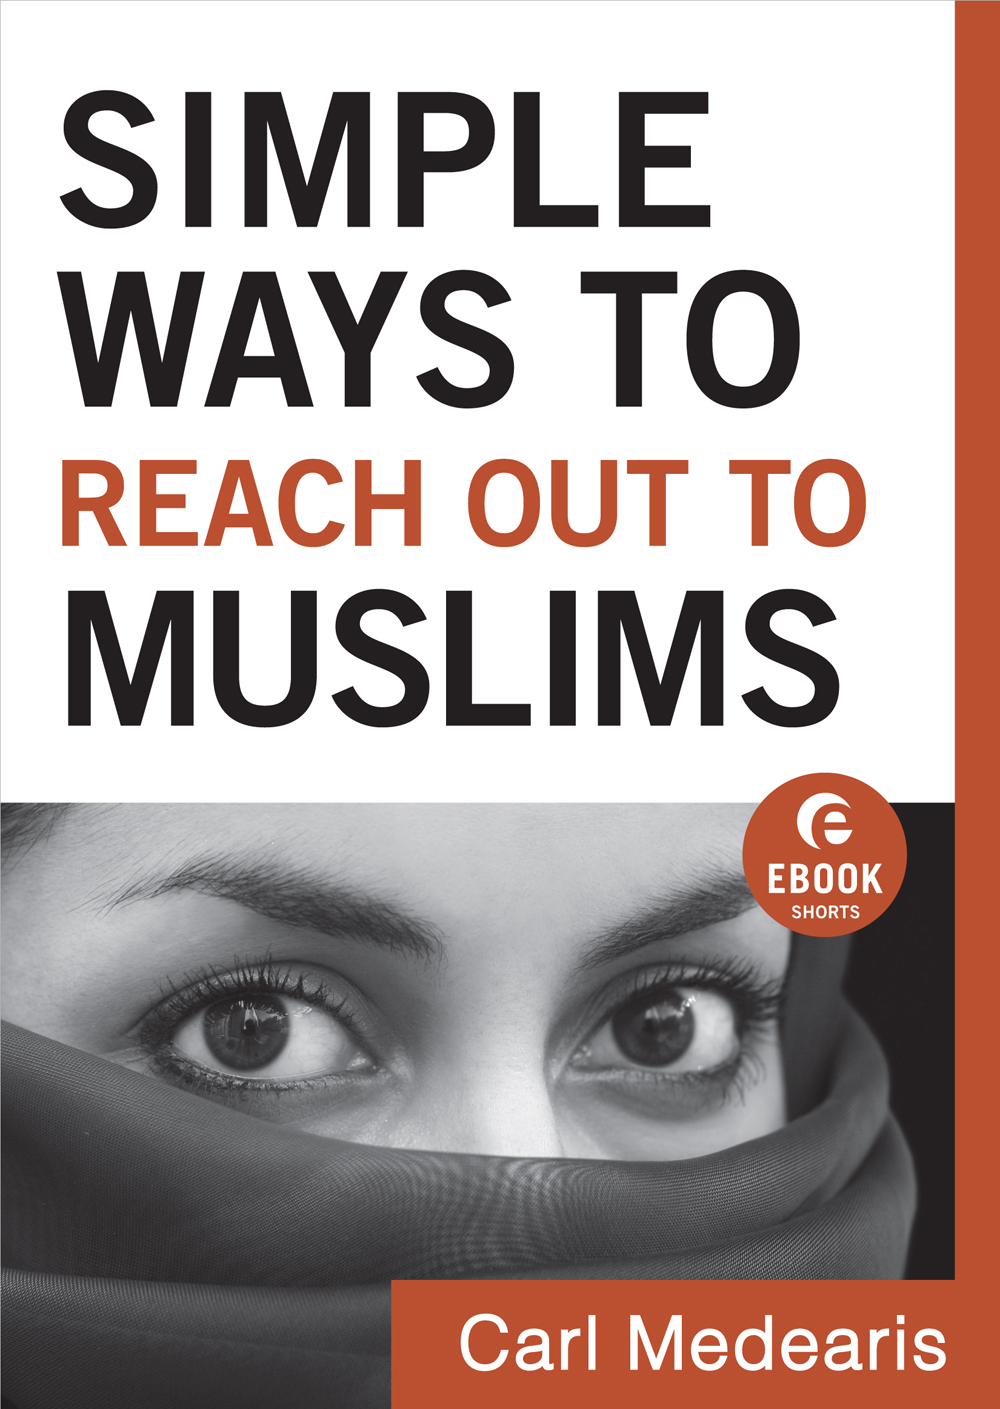 Simple Ways to Reach Out to Muslims (Ebook Shorts) By: Carl Medearis